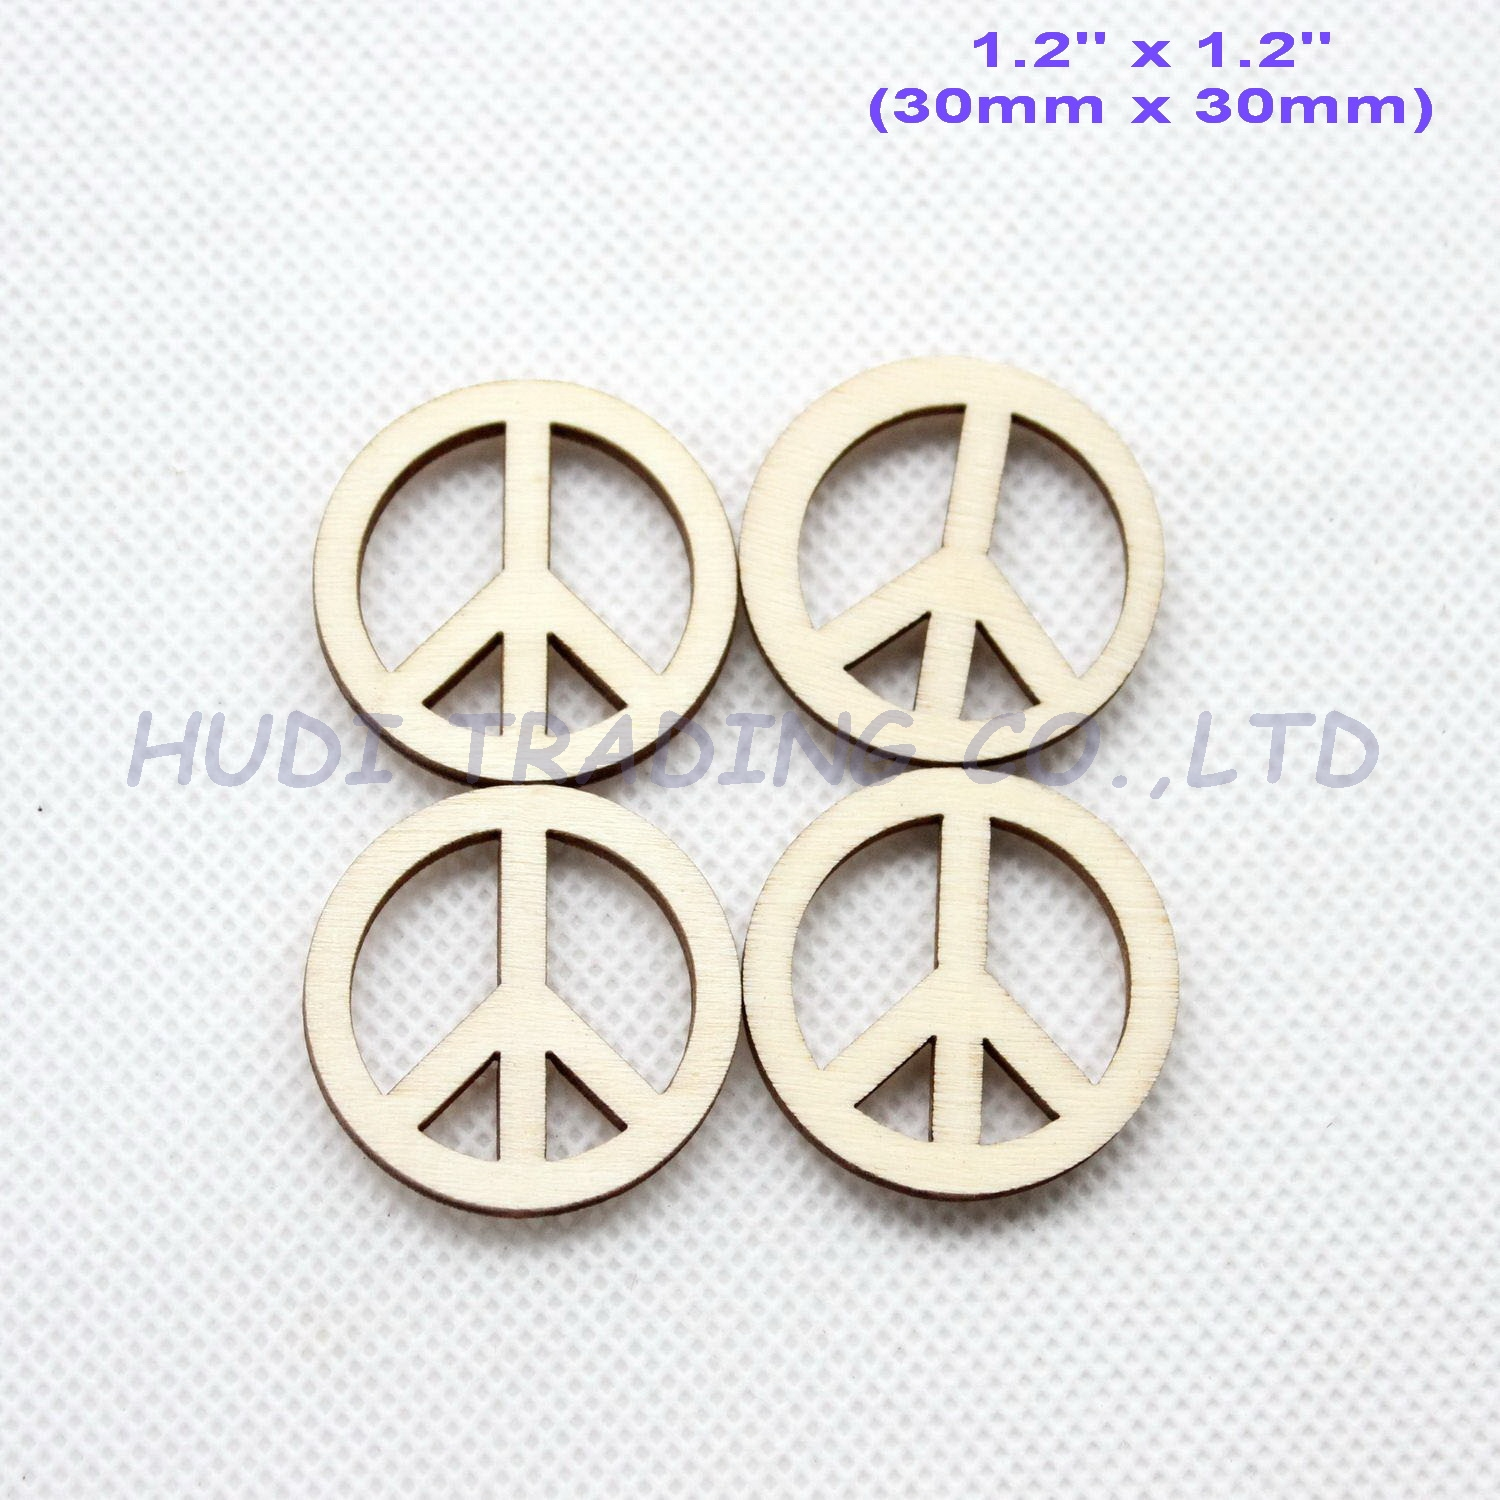 Blank Peace-Sign Wooden Supplies-Ct1425b 30mm Favor-Crafts Natural Ornaments 50pcs/Lot